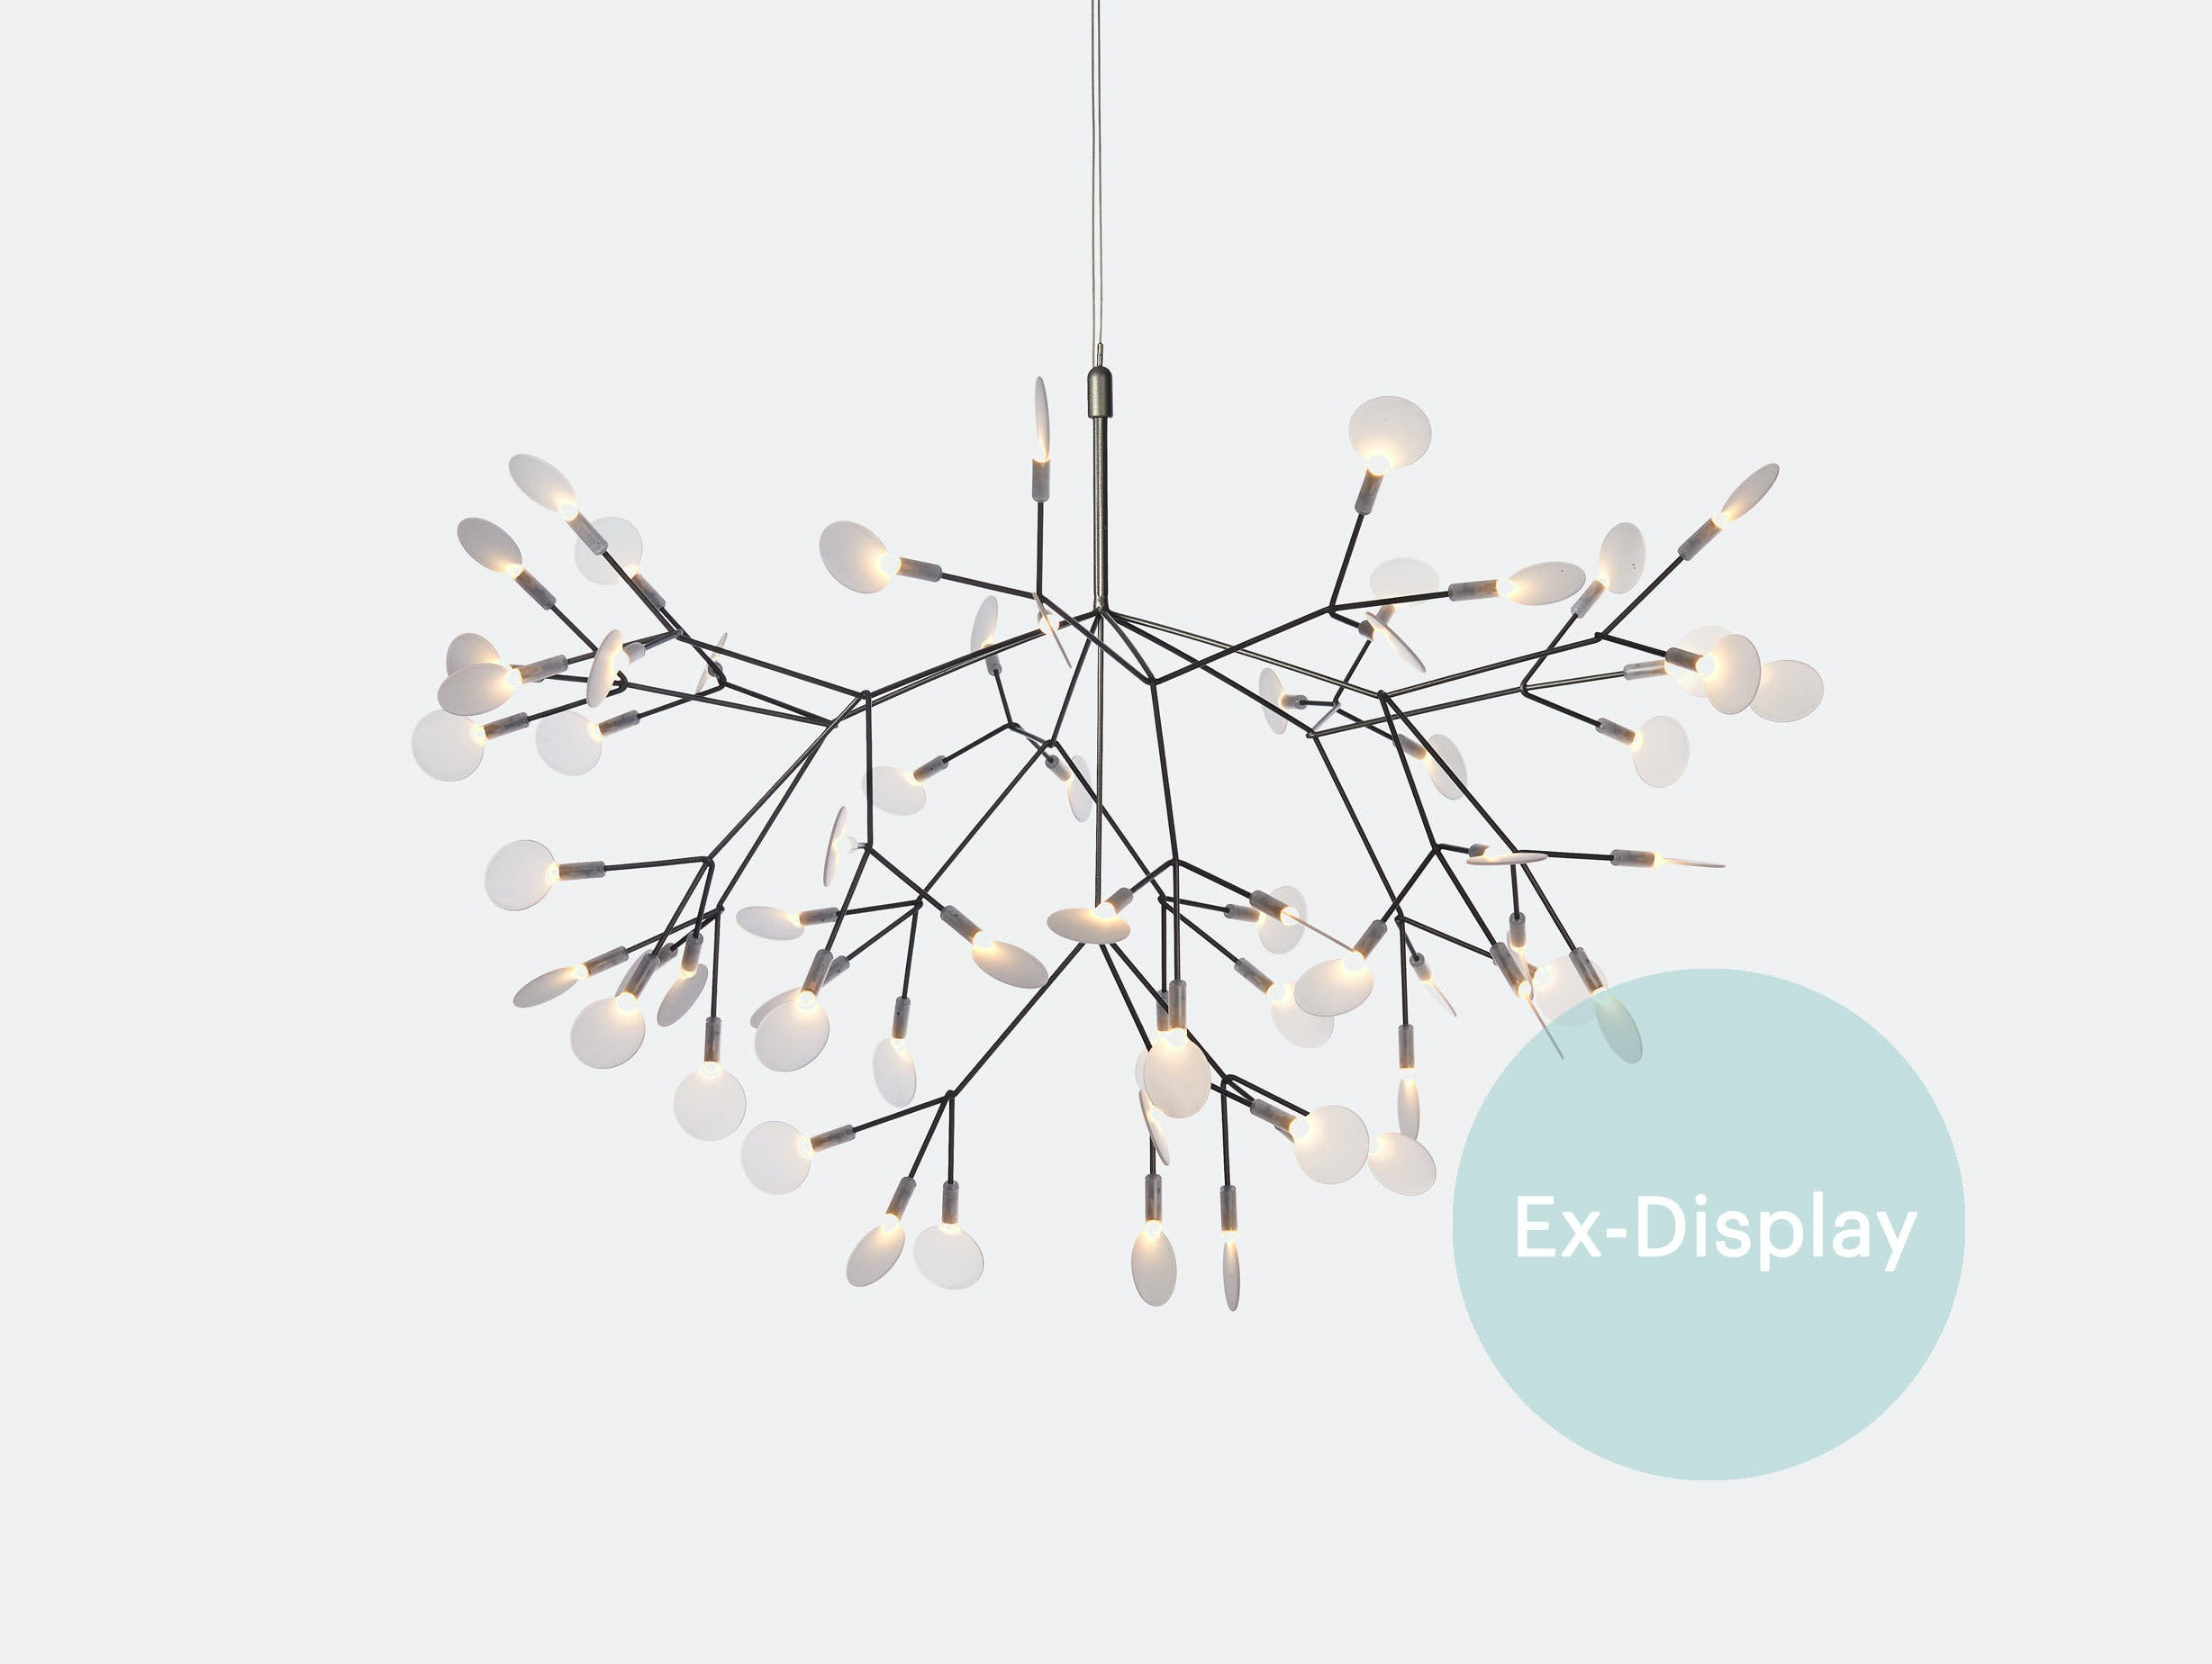 Heracleum II Pendant Light / 30% off in our Summer Sale at £1895 image